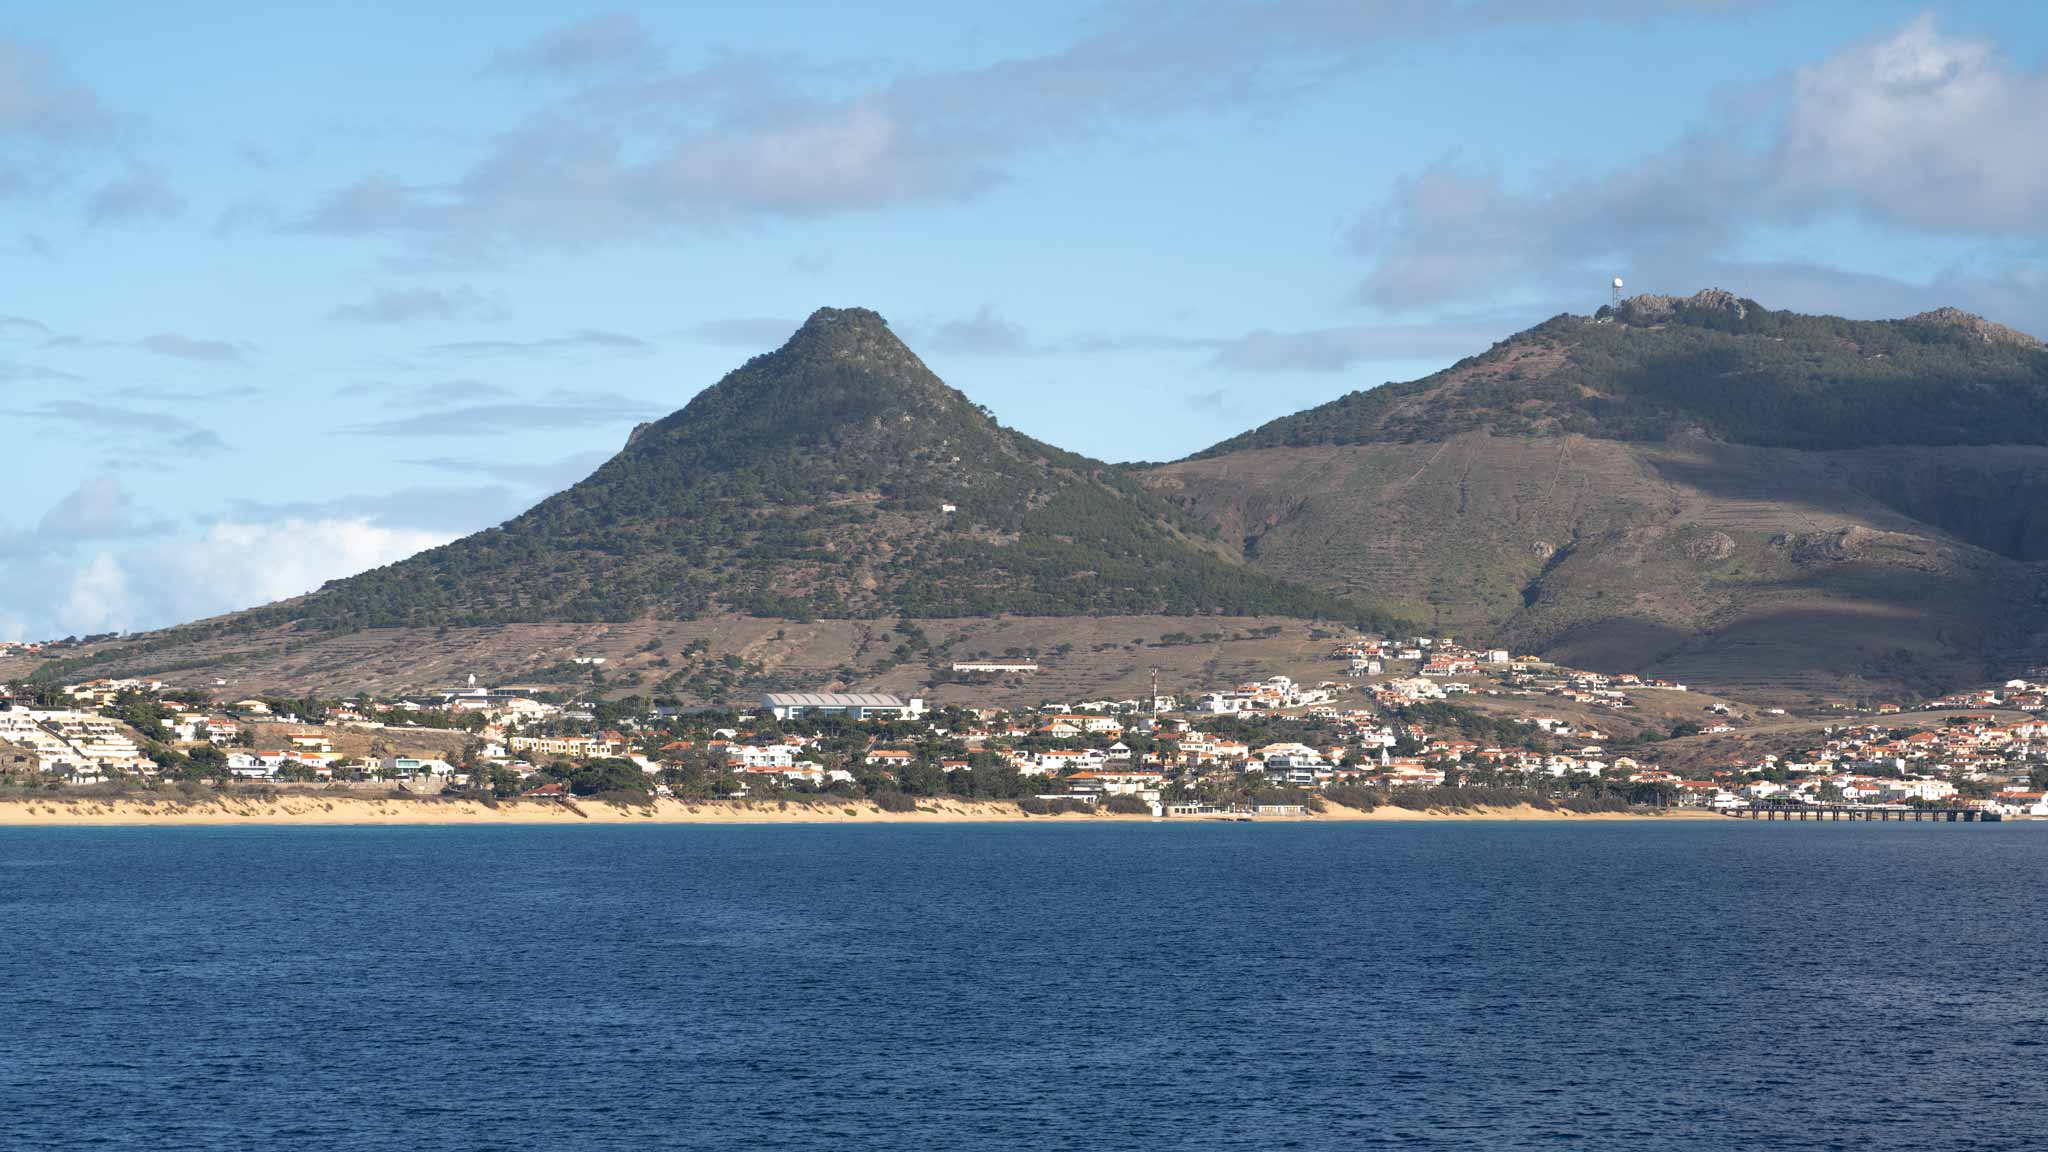 Porto Santo island, with various peaks, as seen from the ferry